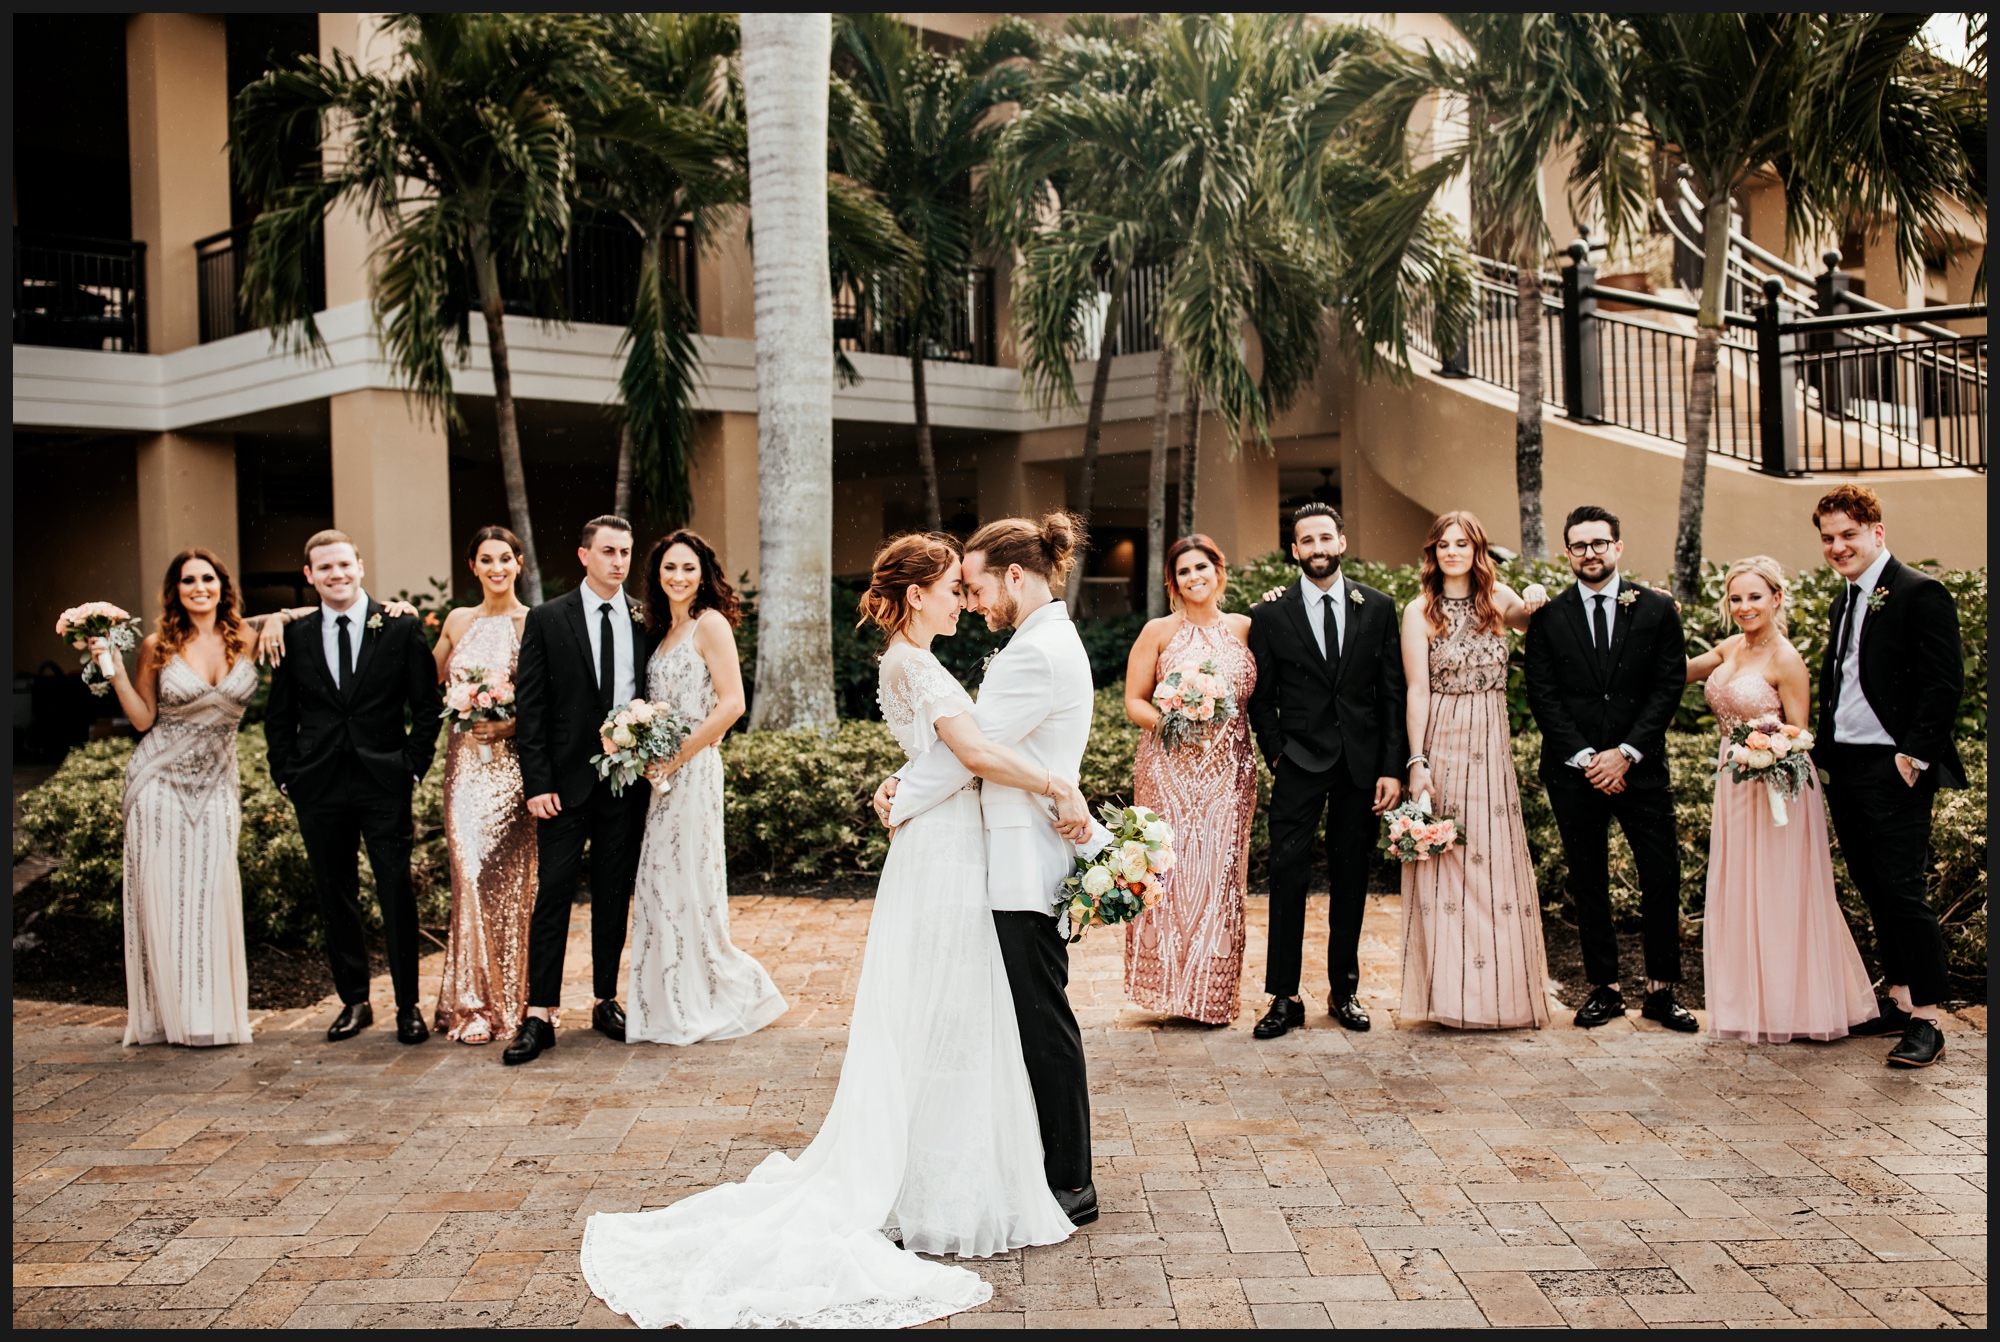 Orlando-Wedding-Photographer-destination-wedding-photographer-florida-wedding-photographer-bohemian-wedding-photographer_1872.jpg